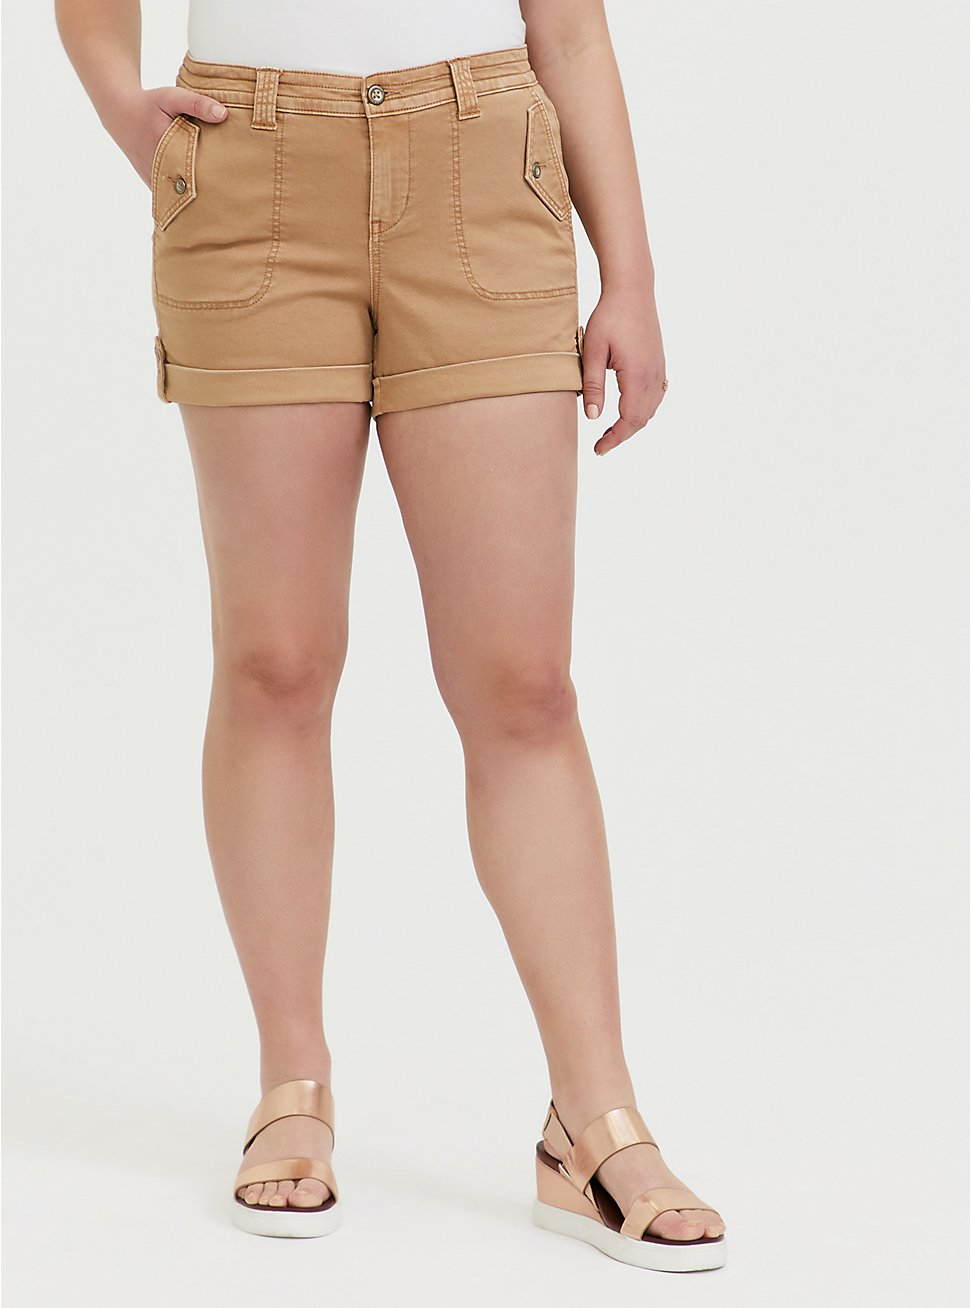 Military Short Short - Twill Khaki Brown , BROWN, hi-res